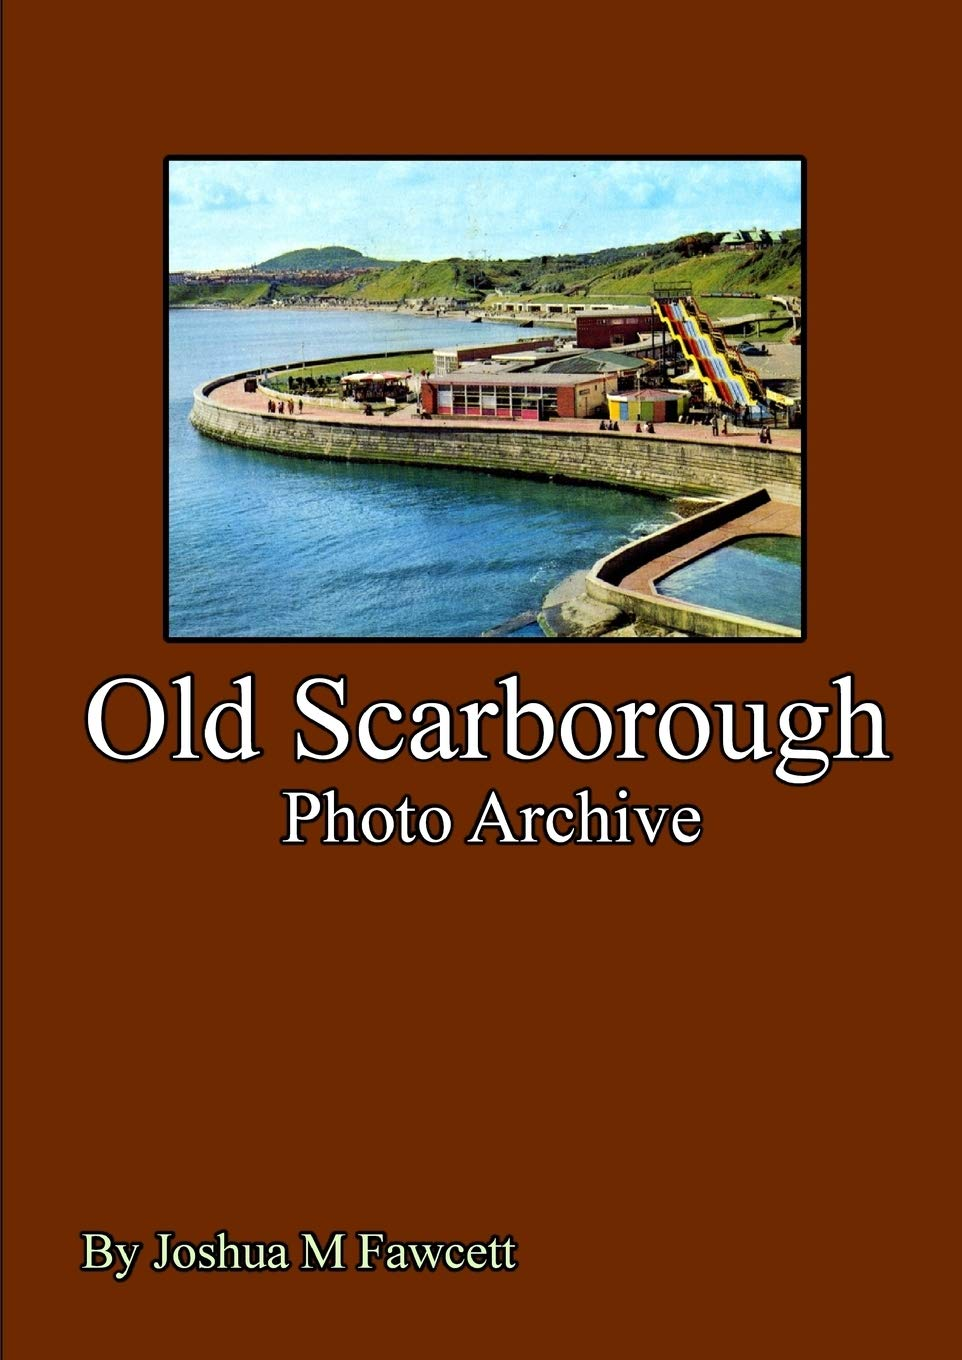 Old Scarborough Photo Archive Volume I